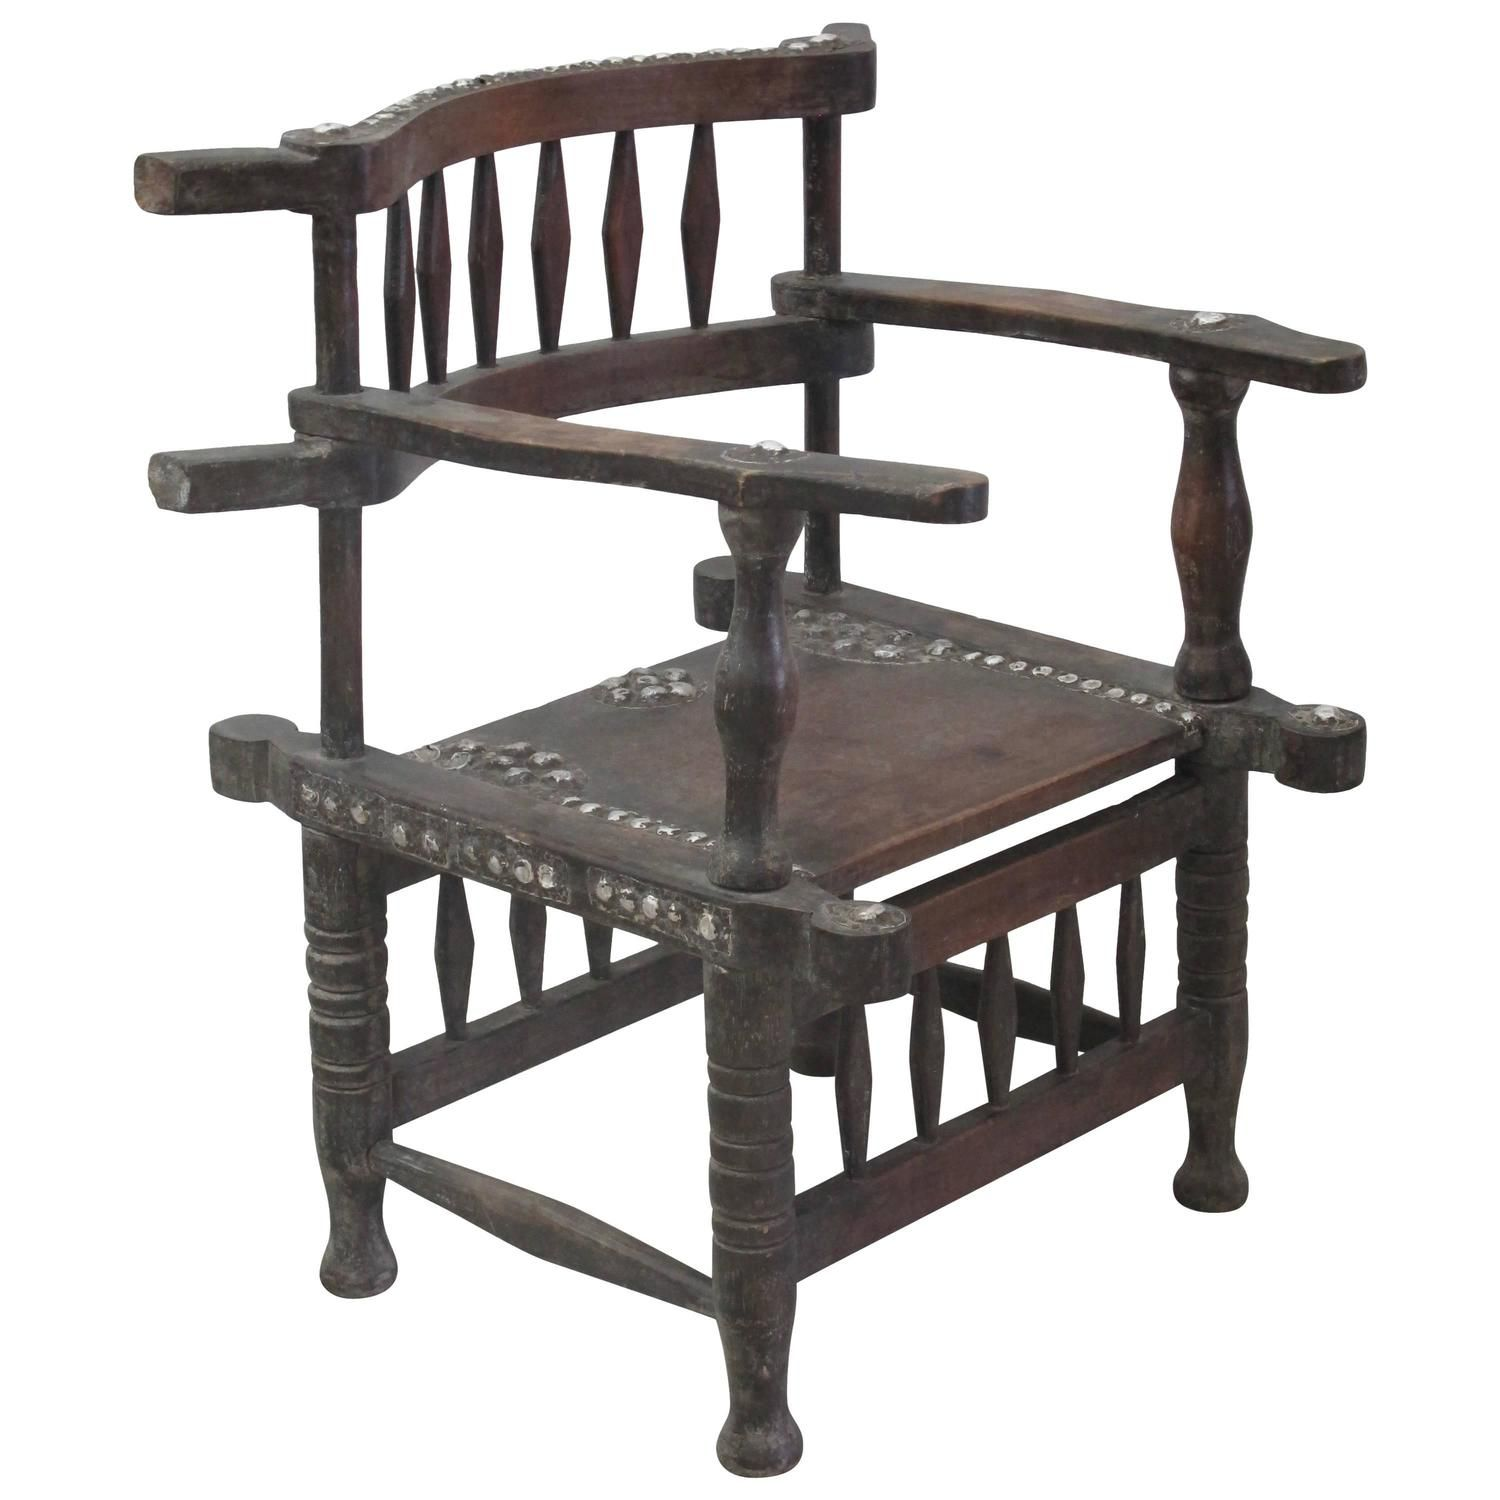 14+ Living room chairs for sale in ghana ideas